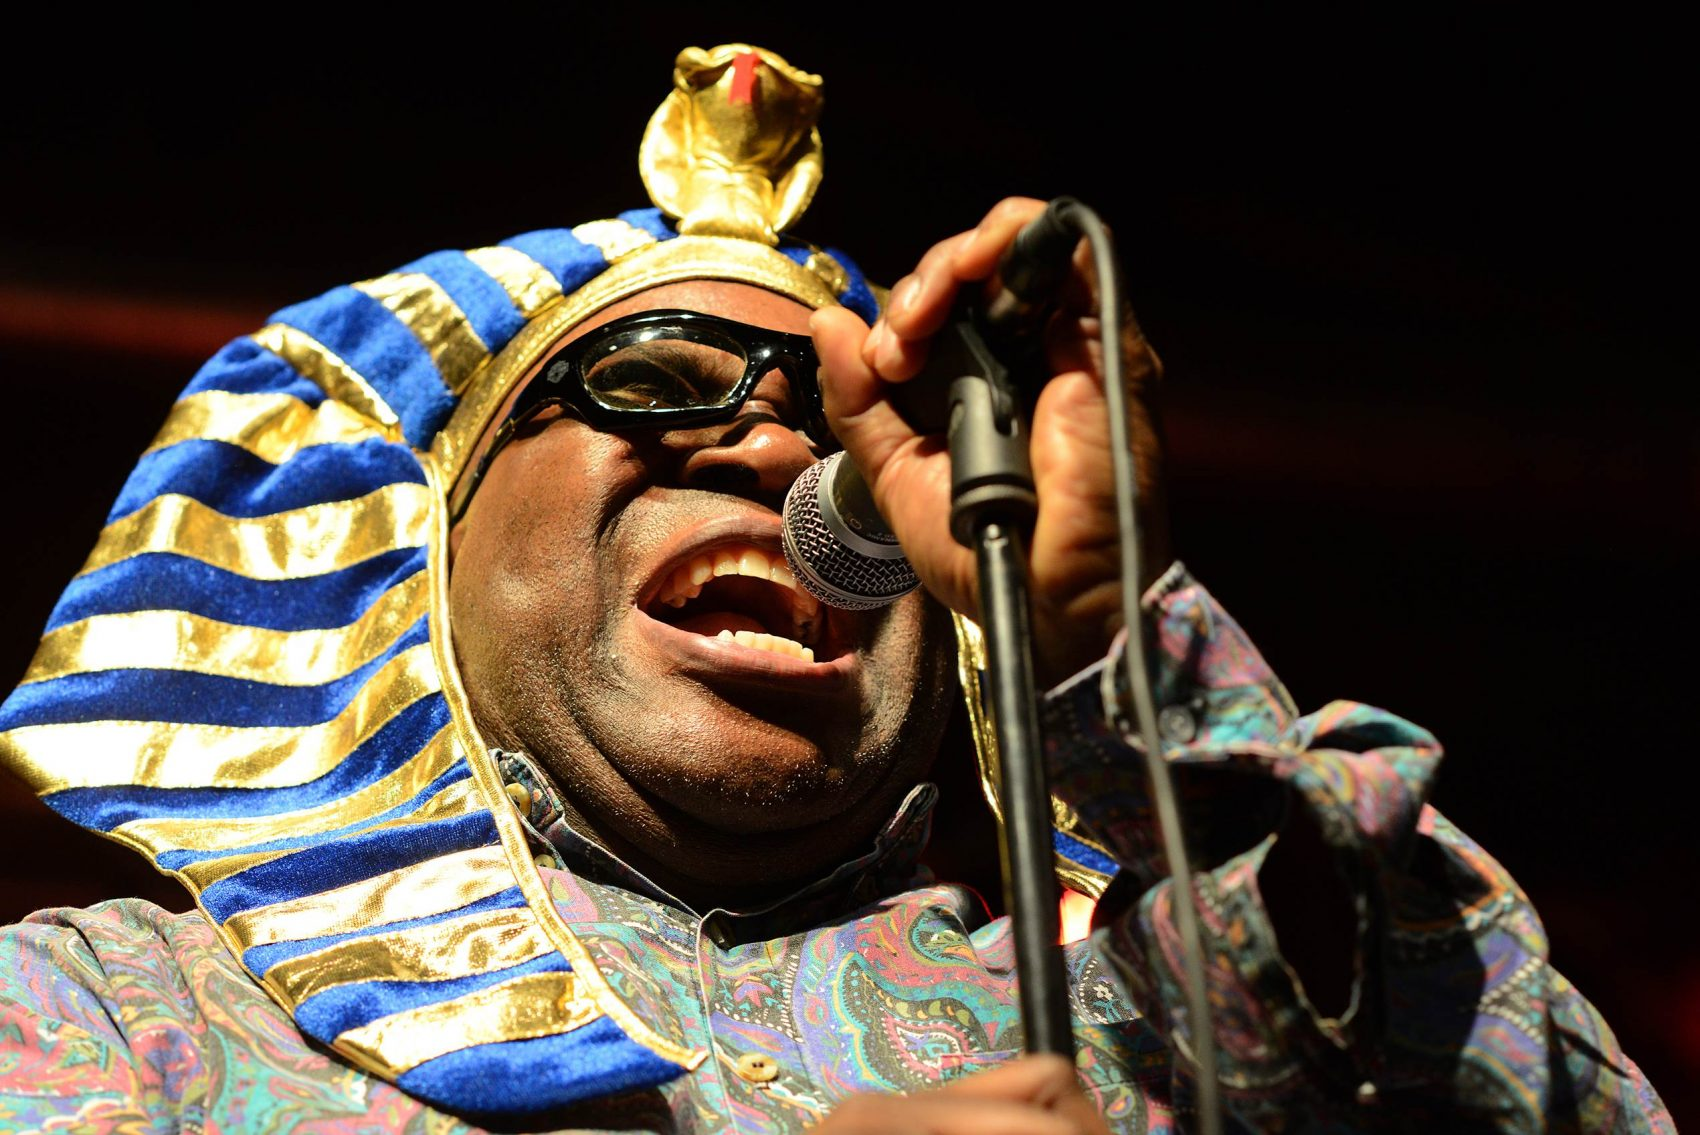 Barrence Whitfield performing. (Courtesy J.A. Areta Goñi)